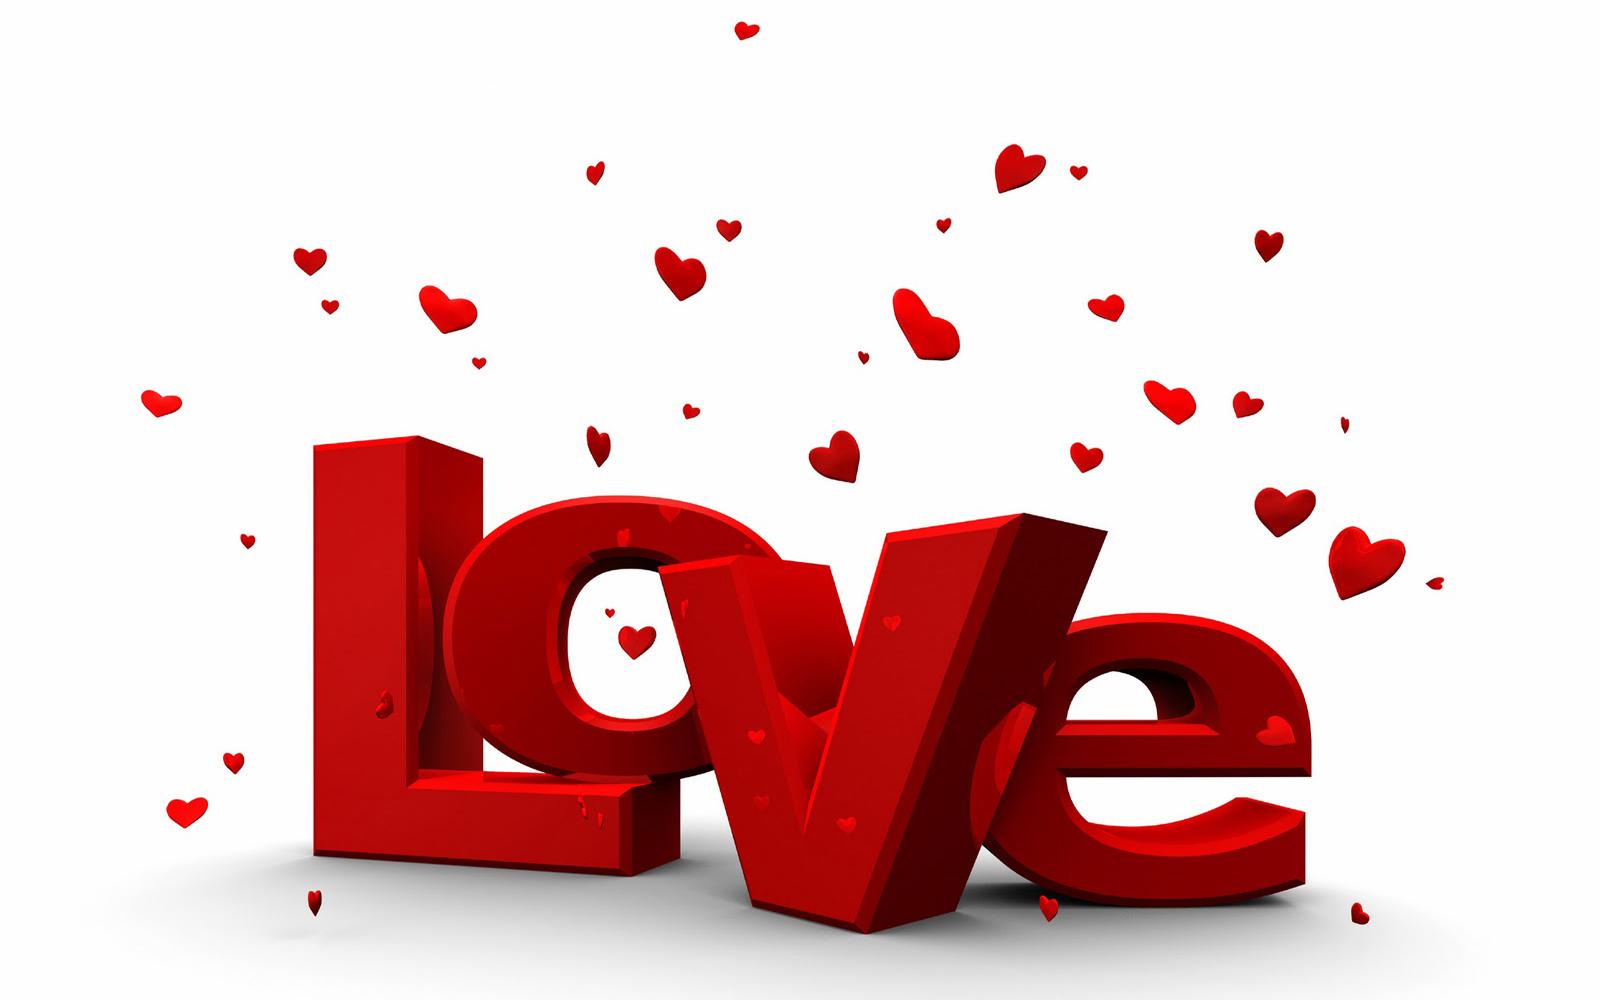 Love Text Wallpapers For Mobile : wallpaper: creative Love Text Wallpapers